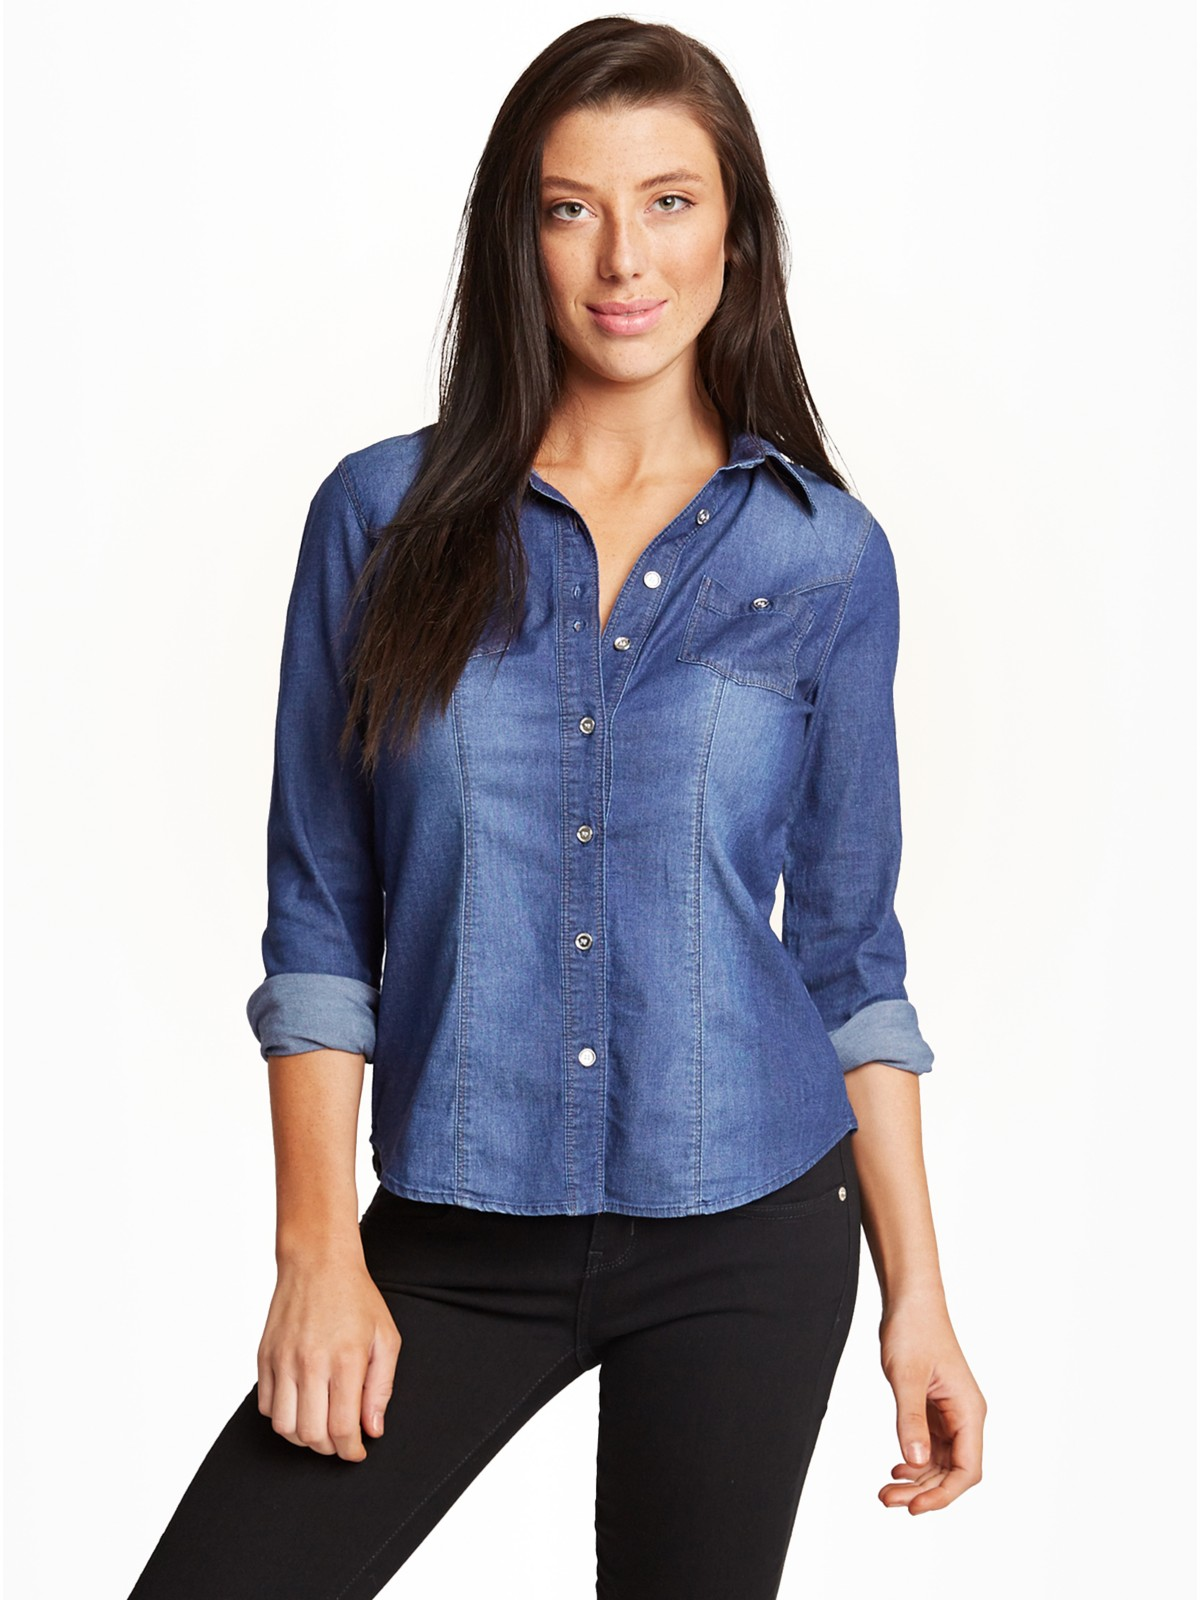 GUESS Women's Jane Denim Shirt | eBay